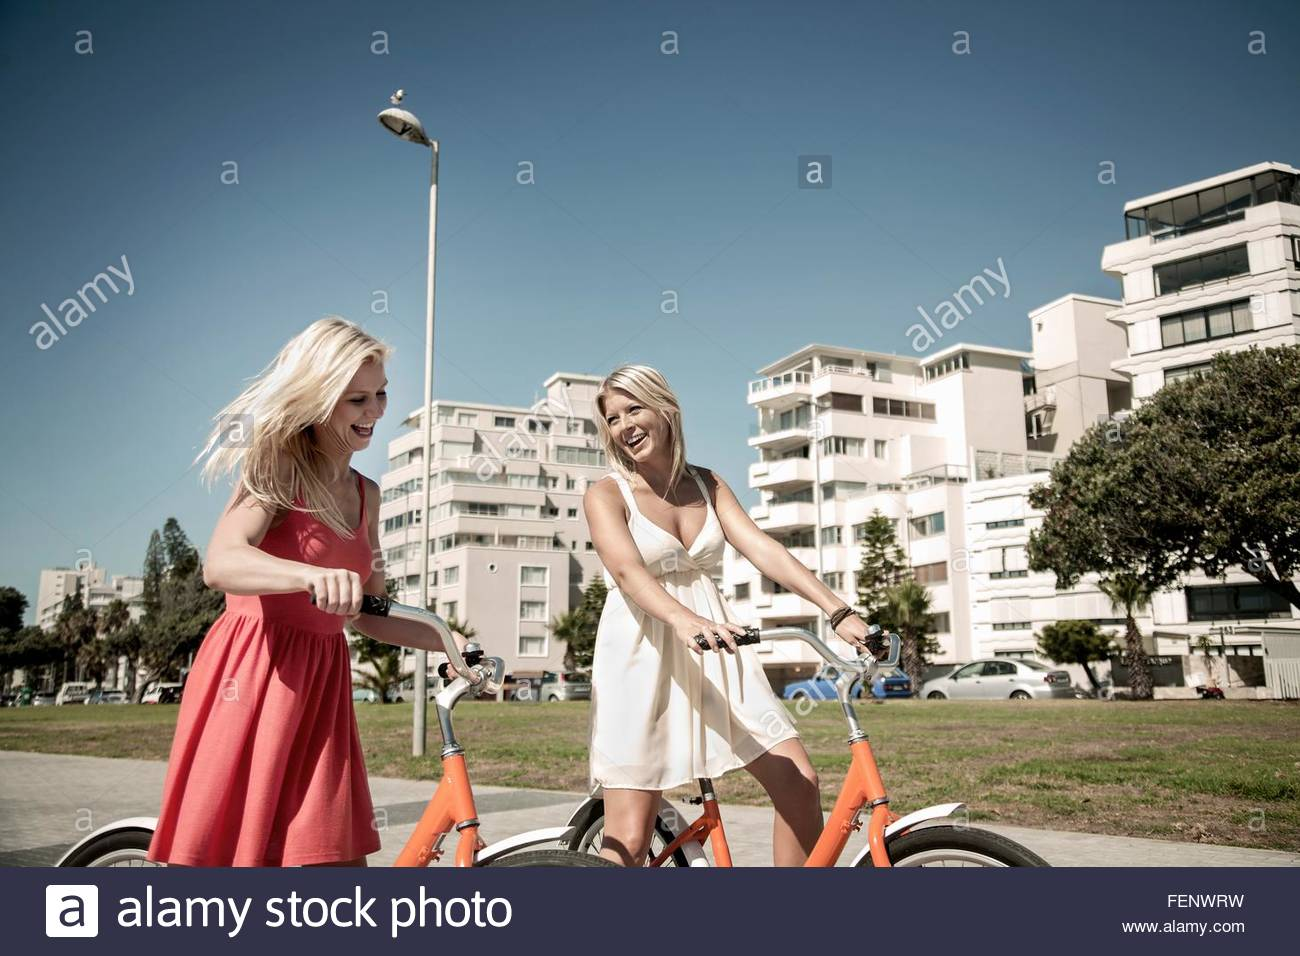 Young women walking with bicycle past buildings, Cape Town, South Africa - Stock Image